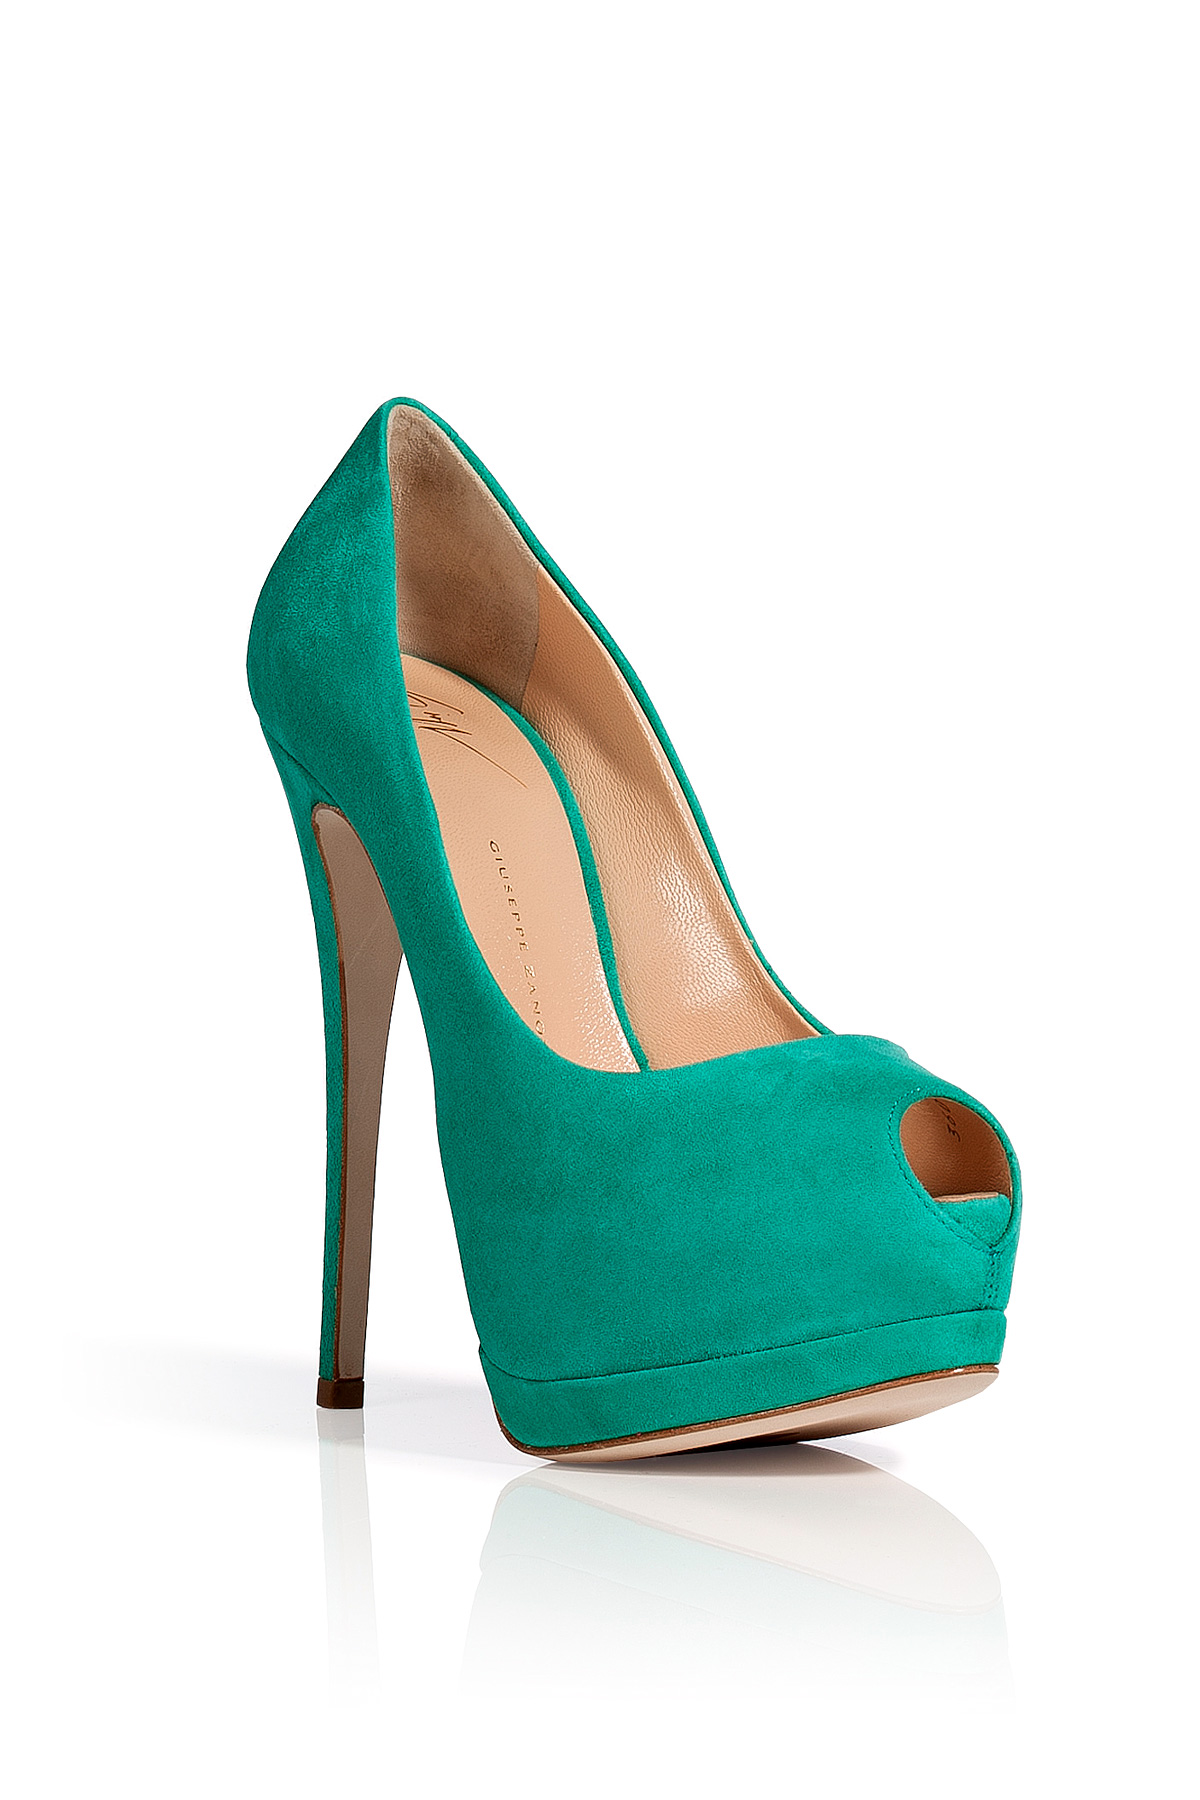 Retro-chic mint pumps with silk laces I need a reason to have shoes like this! Find this Pin and more on Fashion by Topasix. i love the mint color, as well as this retro-mint style.